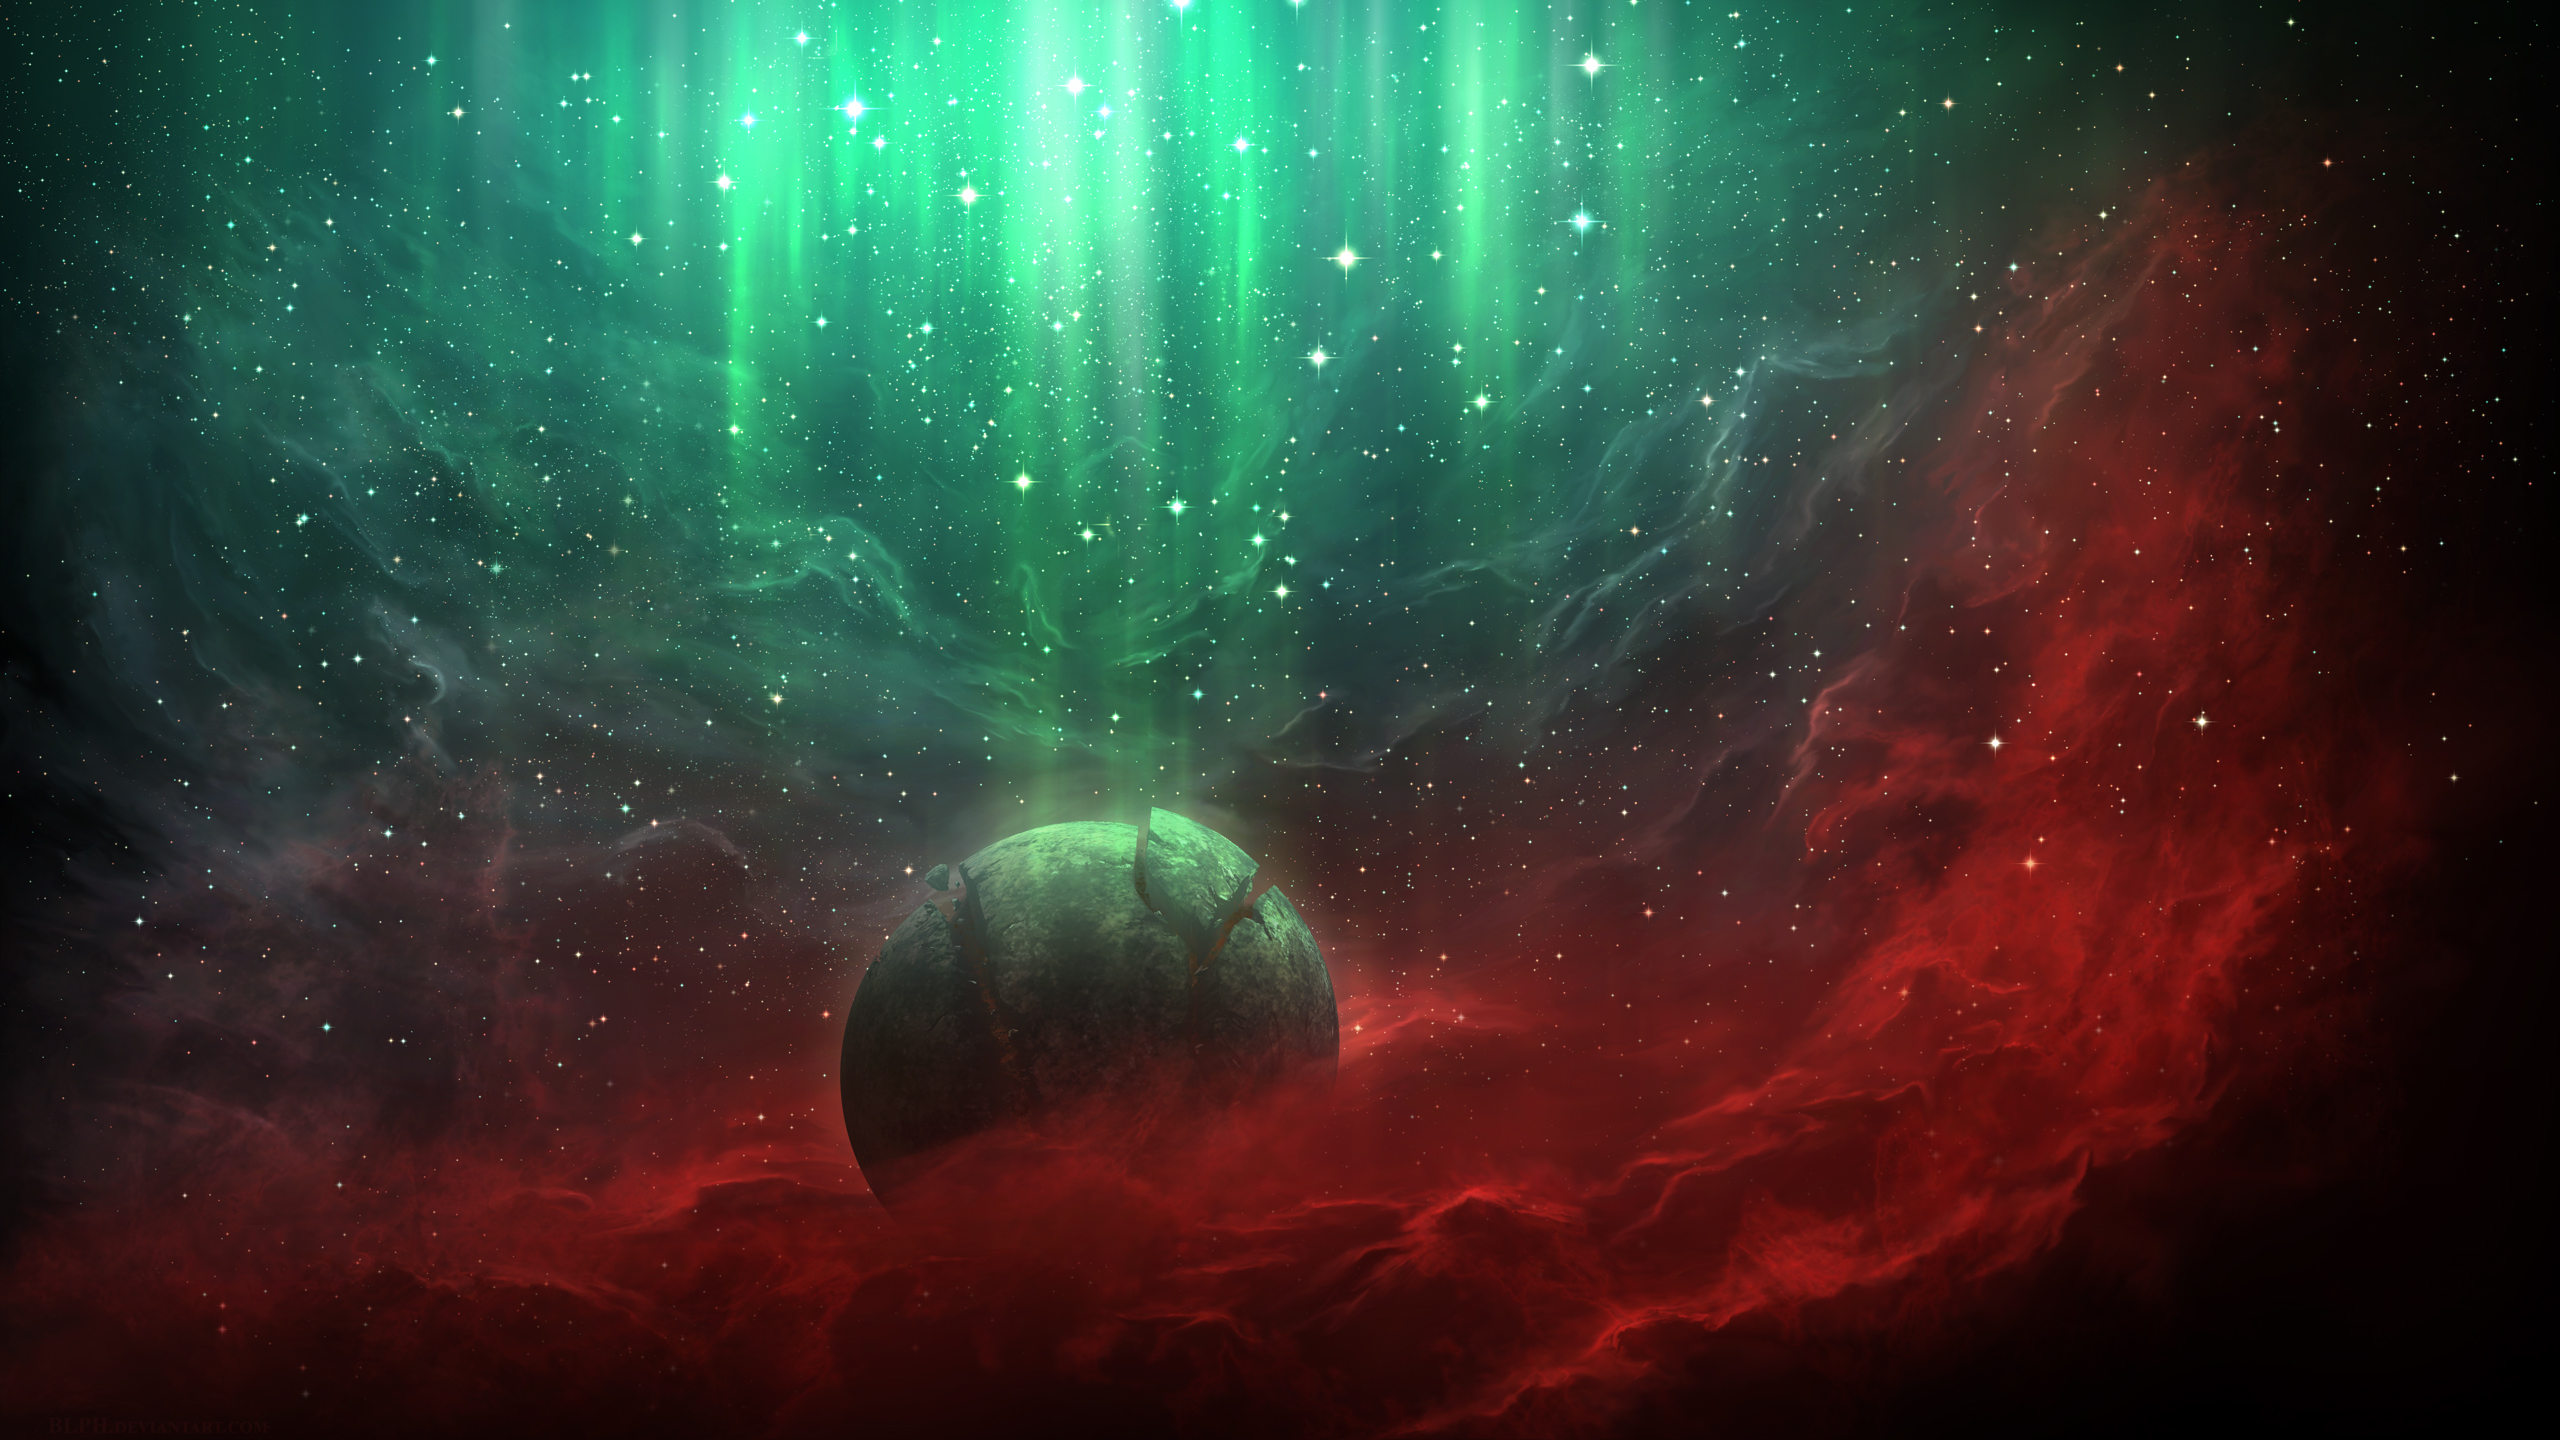 Space fantasy awesome wallpapers - Epic wallpapers 2560x1440 ...